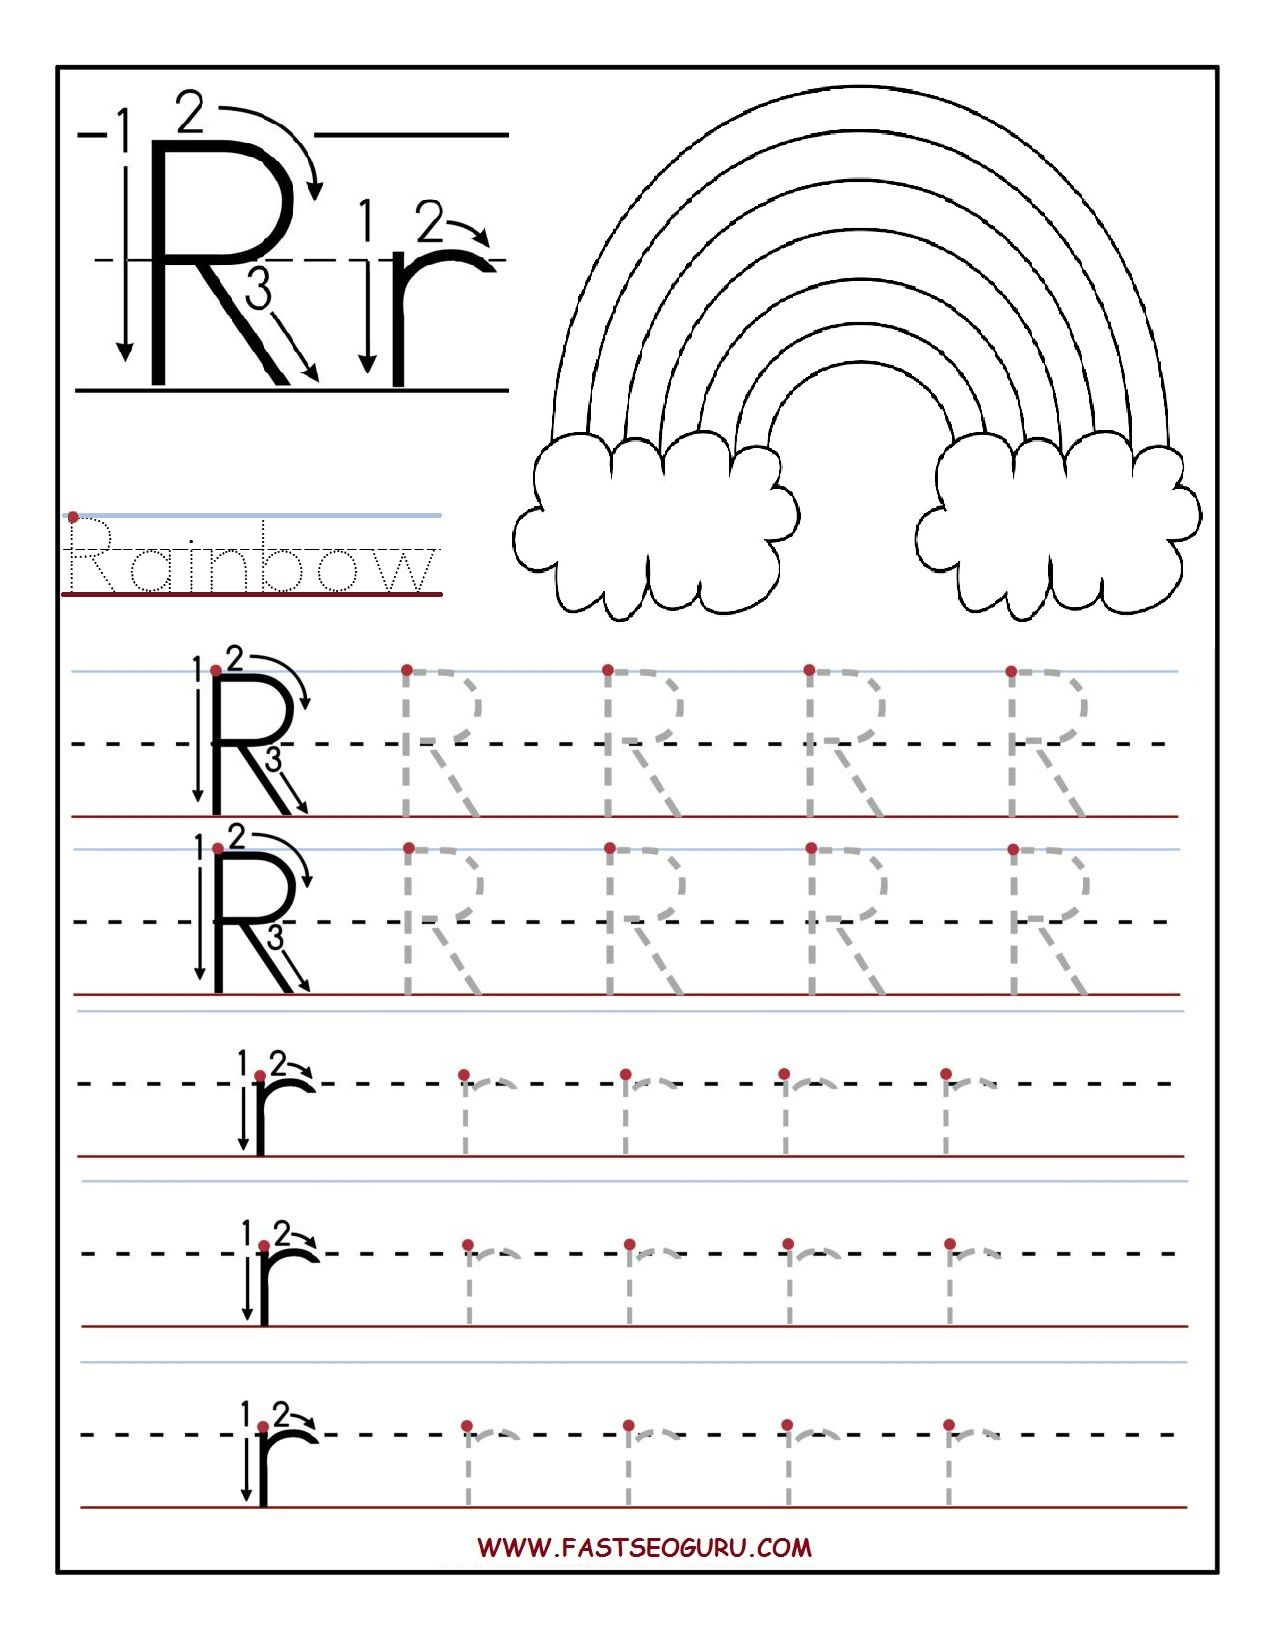 Printable Letter R Tracing Worksheets For Preschool | 파닉스 with regard to Letter R Tracing Pages